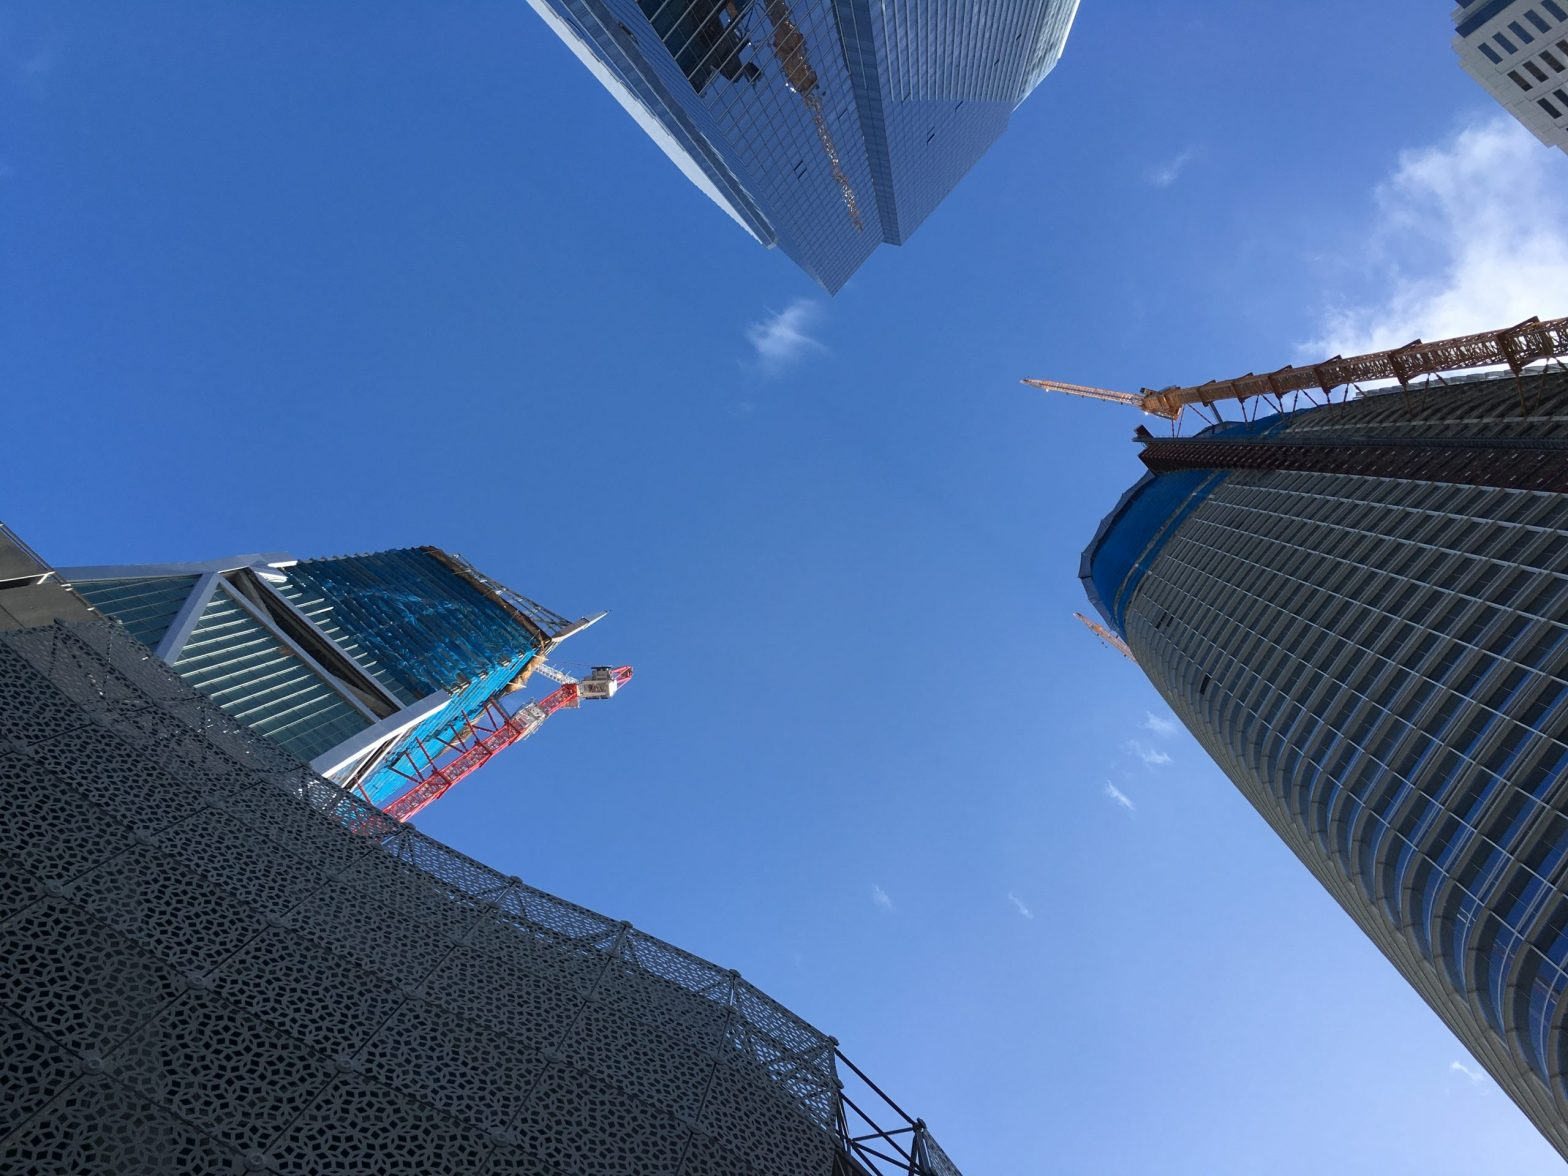 looking up between three tall buildings, two of them under construction